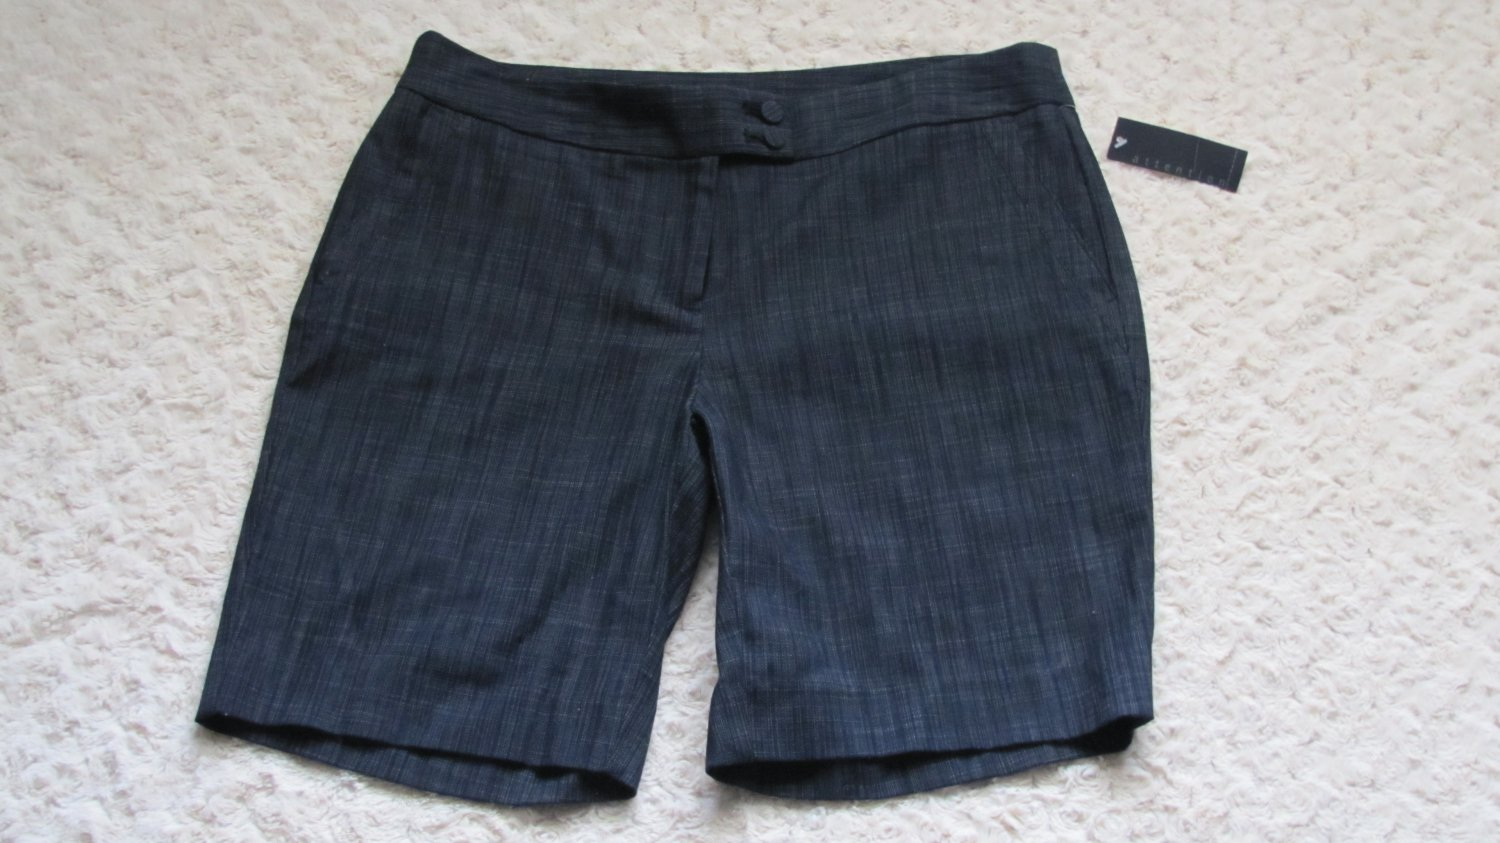 NWT WOMENS DRESS SHORTS BY ATTENTION IN A SIZE 8